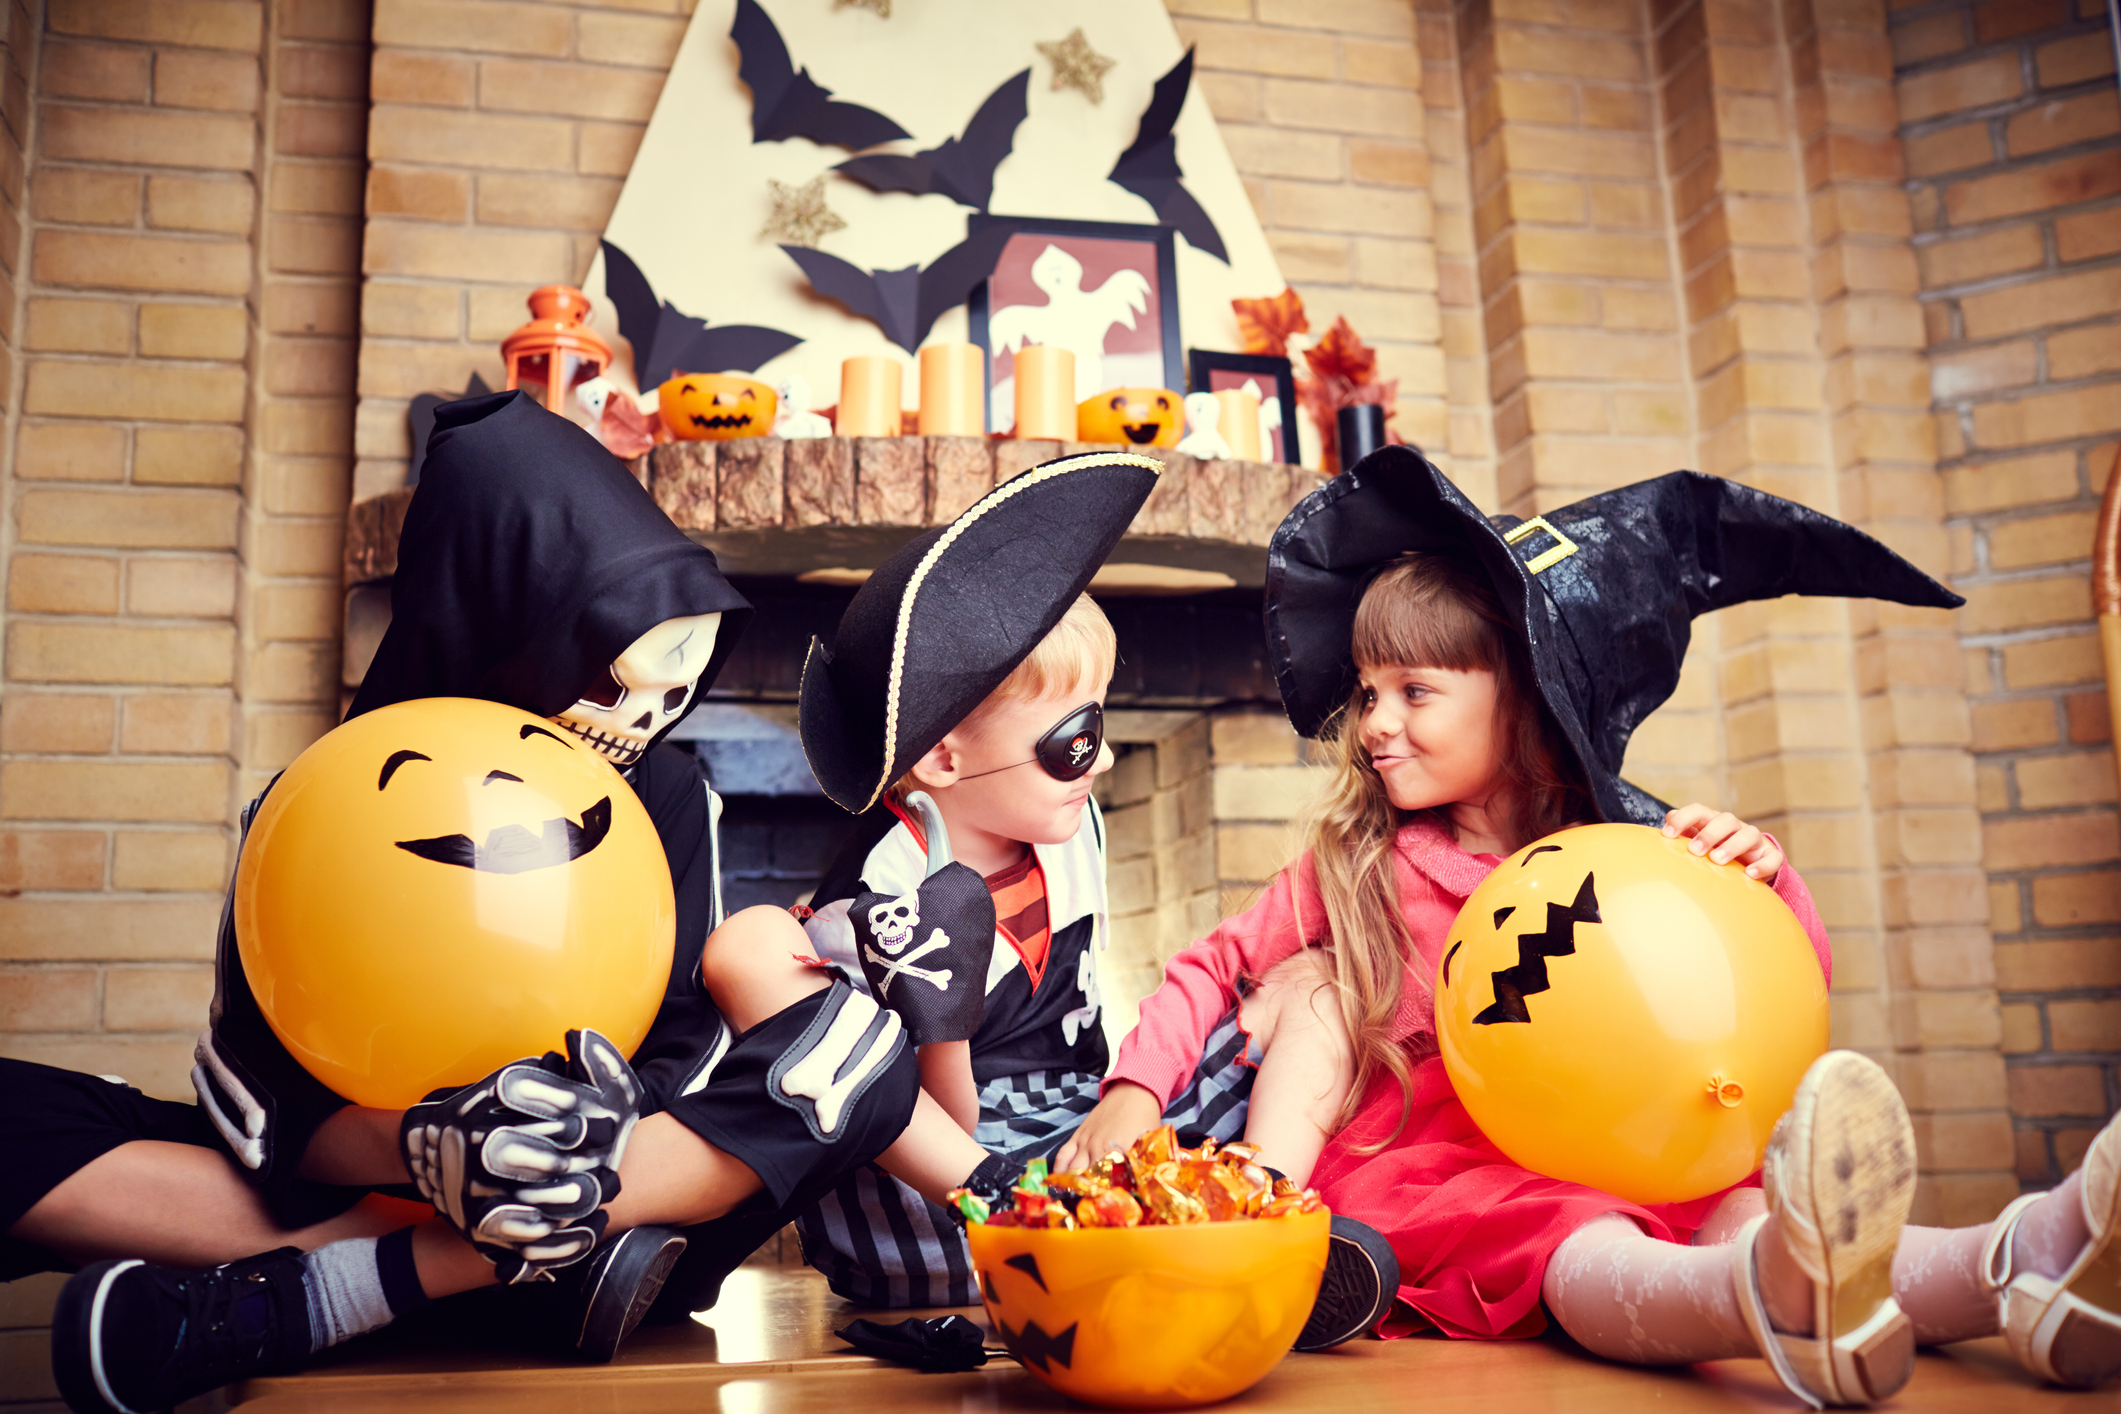 Kids Eating Halloween Candy | Prevent Dental Cavitites